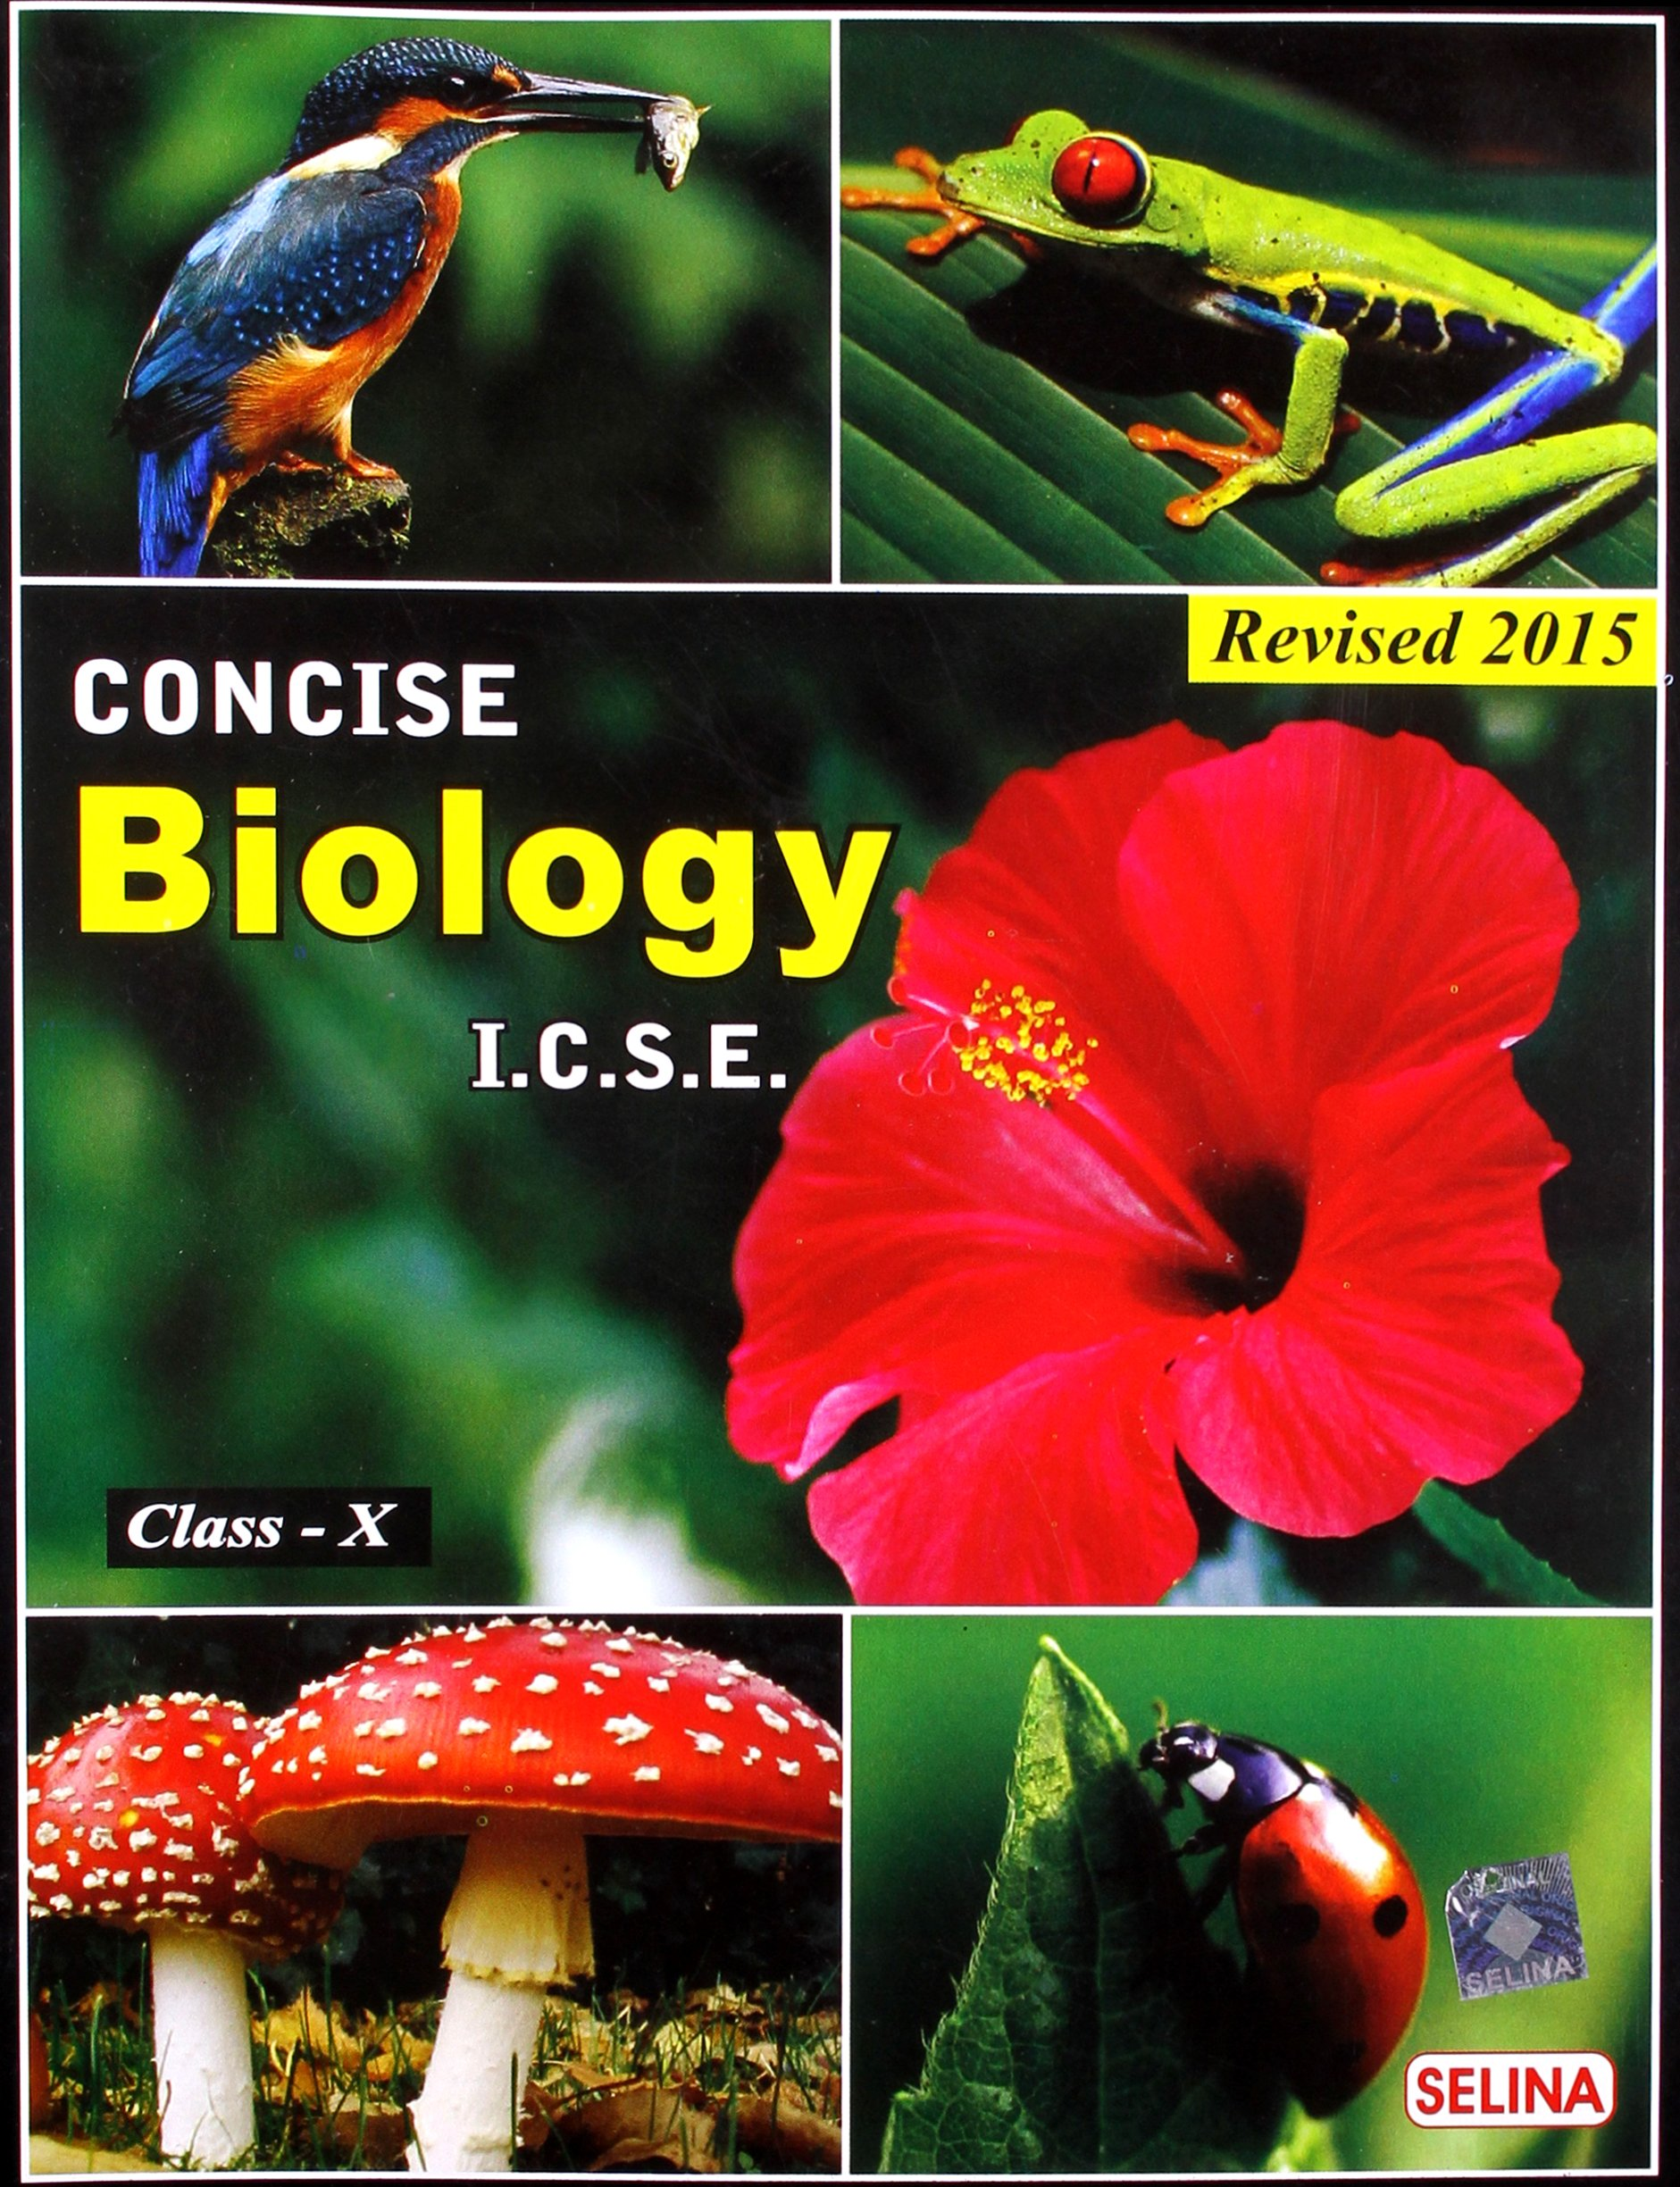 Biology textbook pdf dolapgnetband biology textbook pdf fandeluxe Choice Image